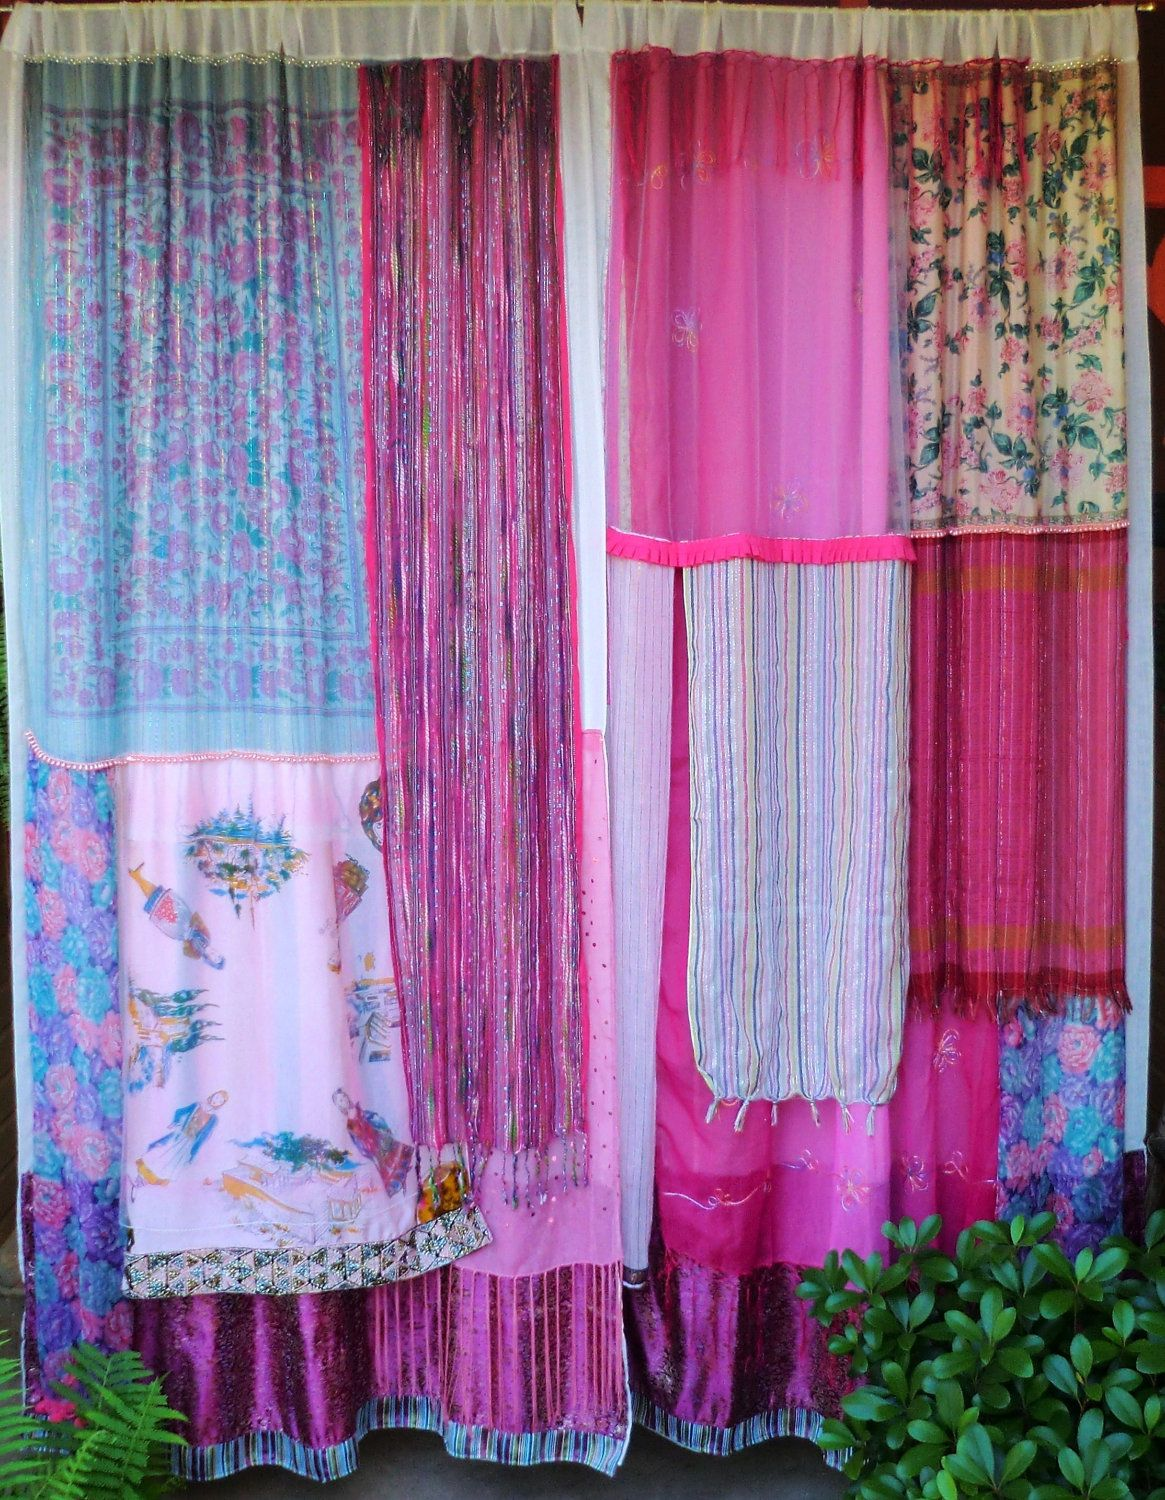 Gypsy shabby chic curtains - Rock The Casbah Handmade Gypsy Curtains Bohemian Global Hippie Ethic Style